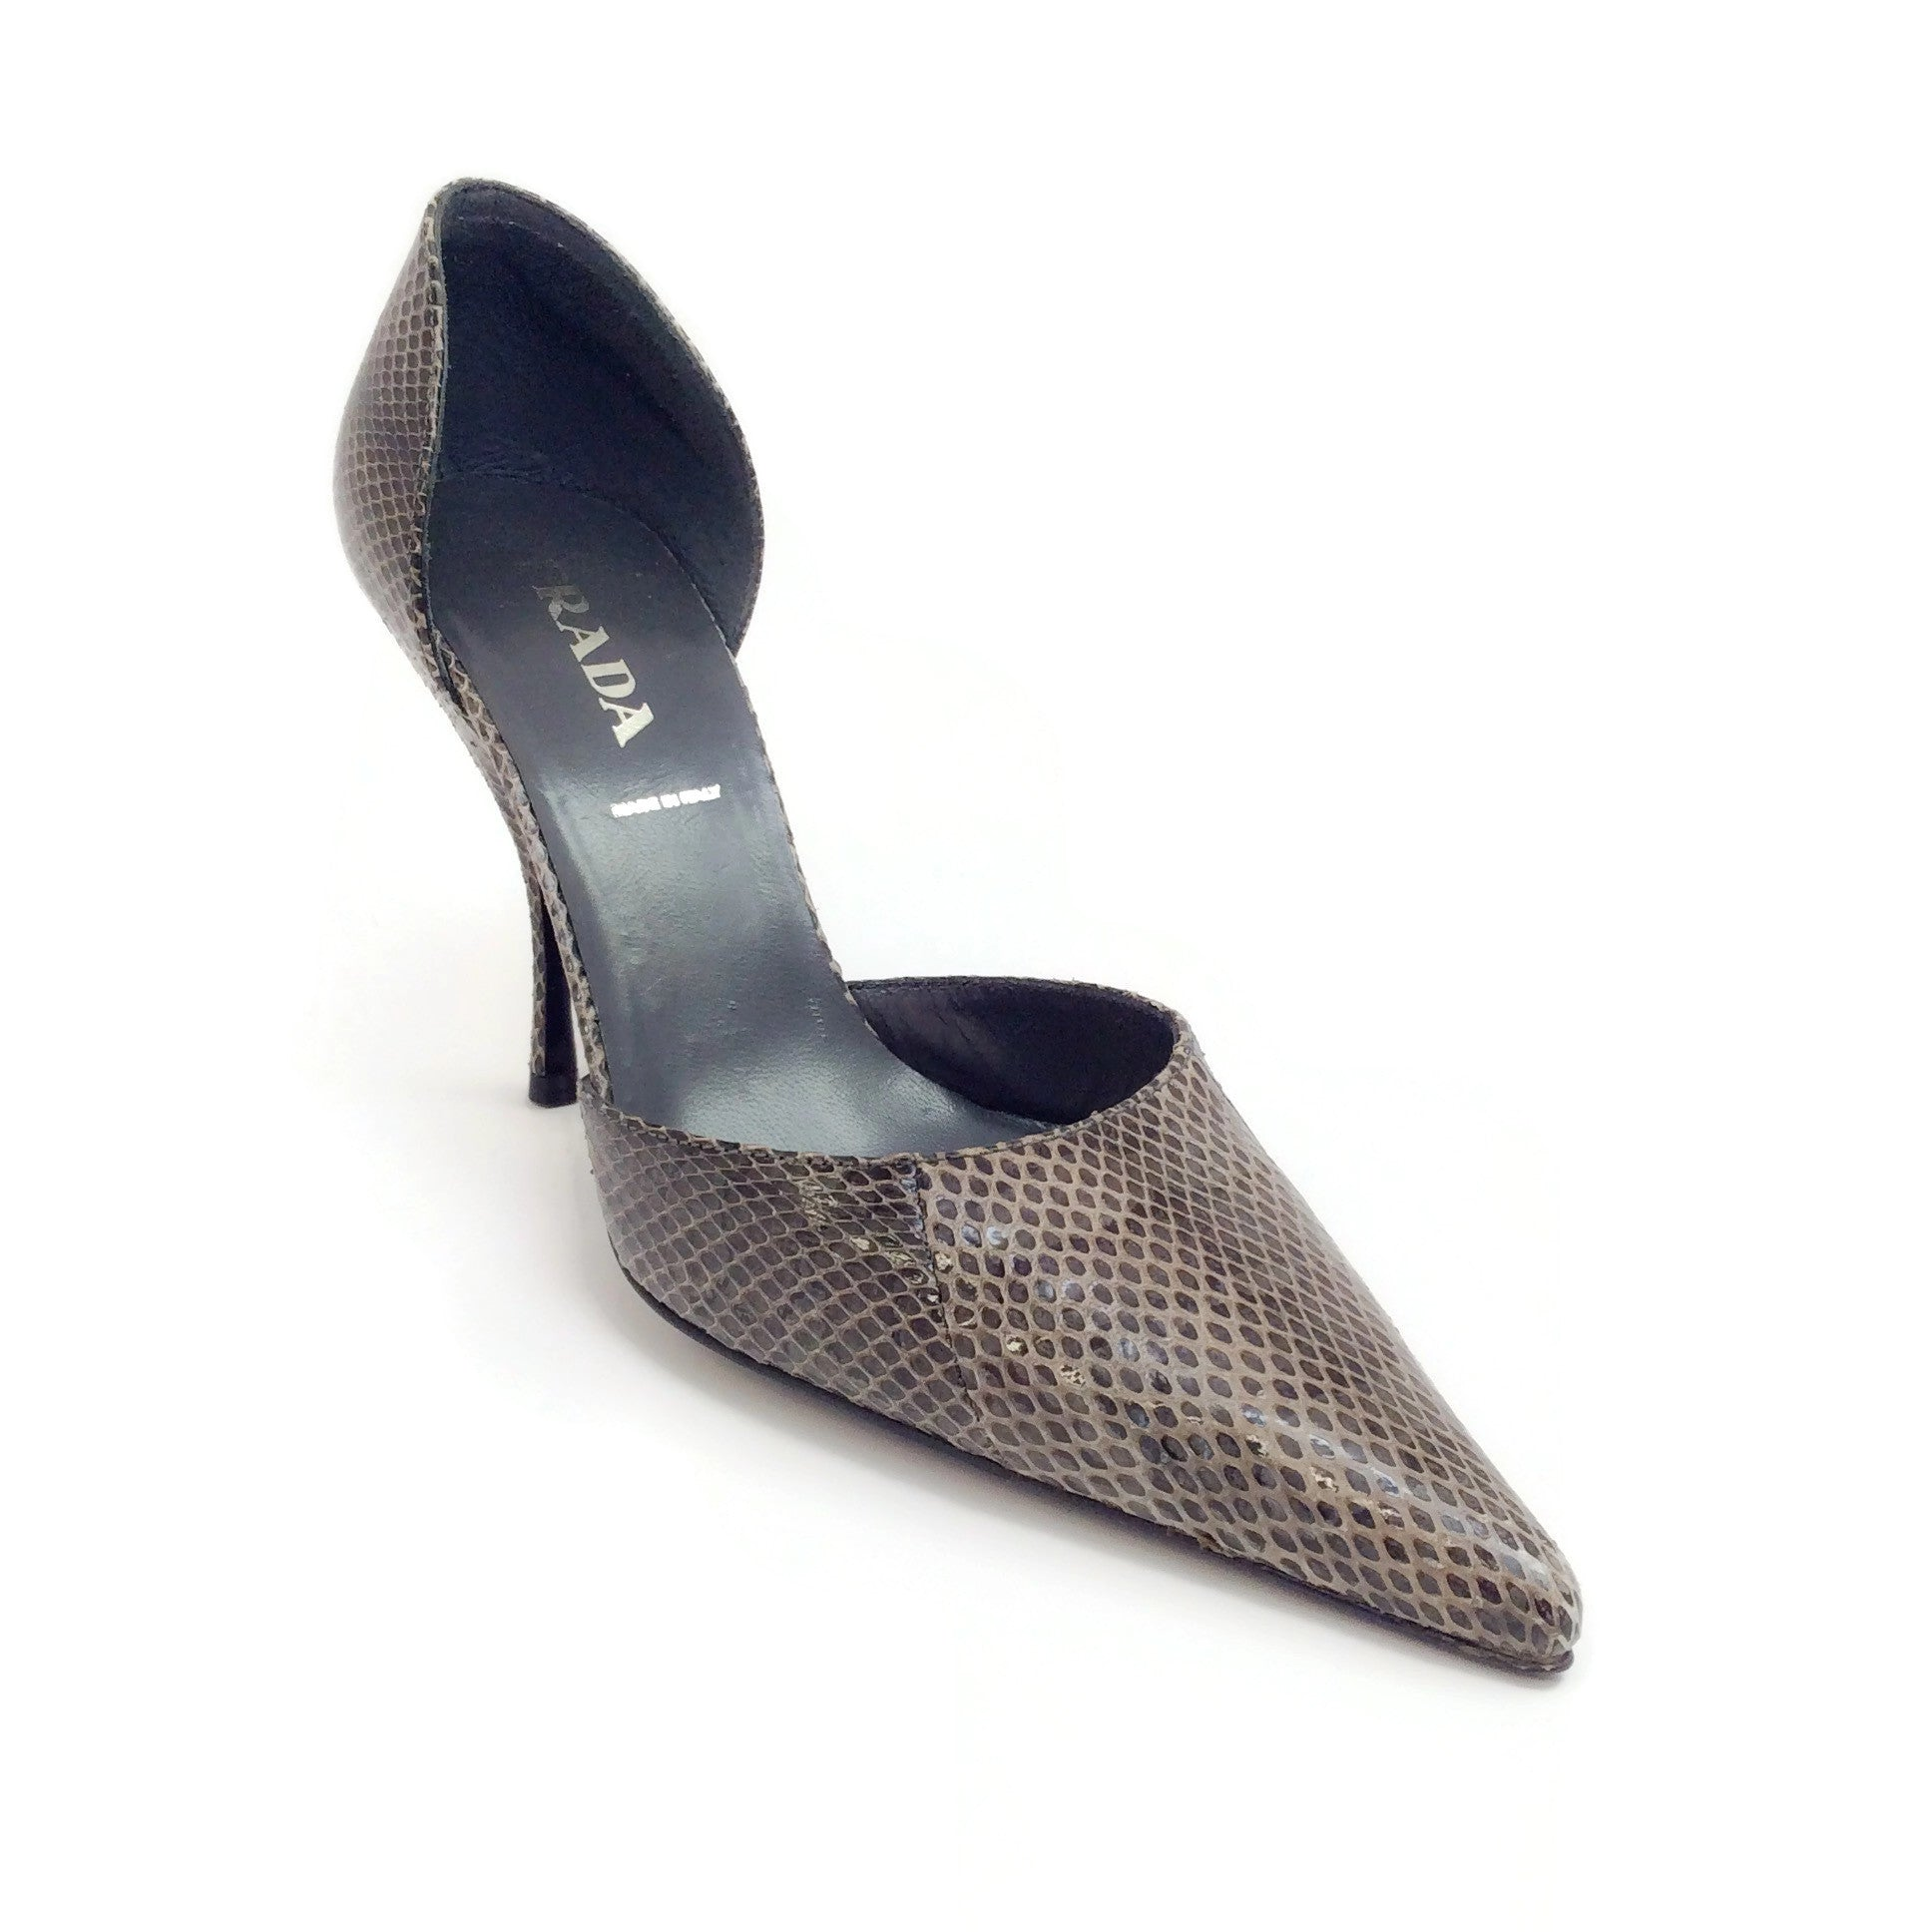 Prada Grey Lizard Pumps